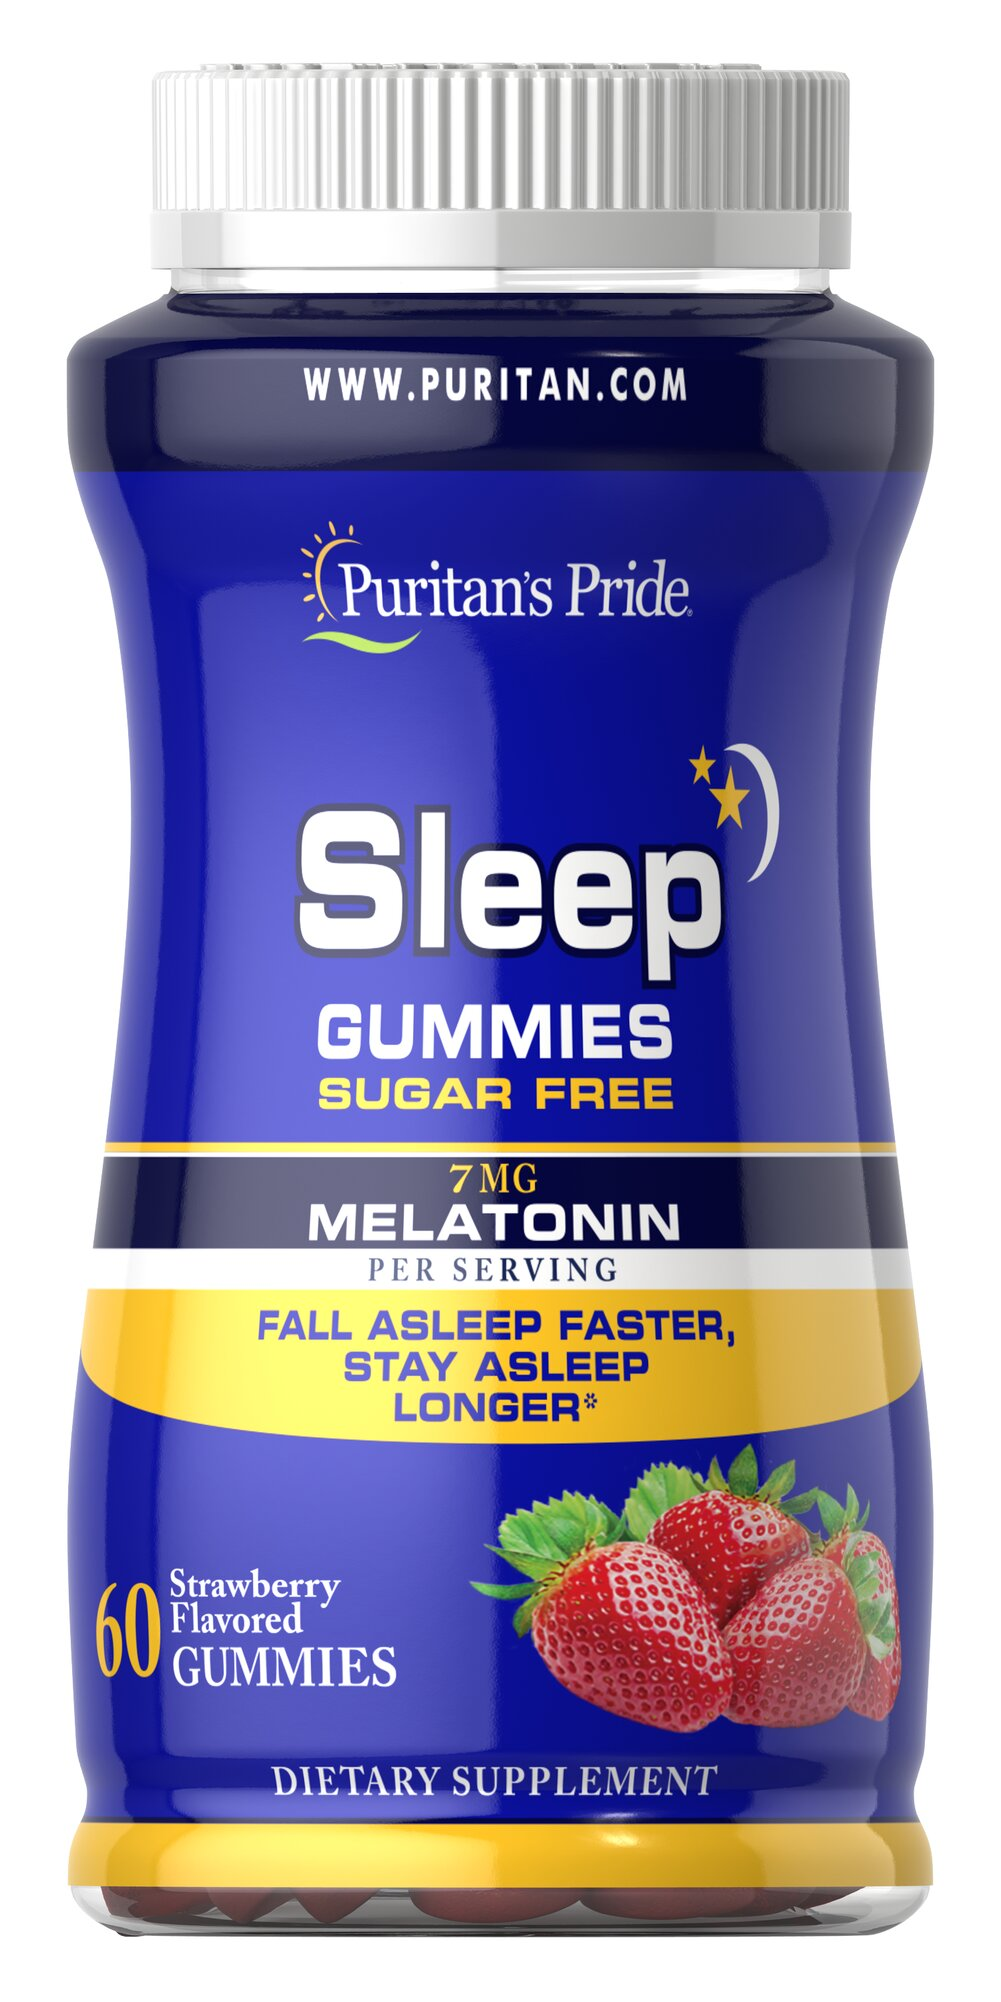 Sugar Free Sleep Gummies Thumbnail Alternate Bottle View